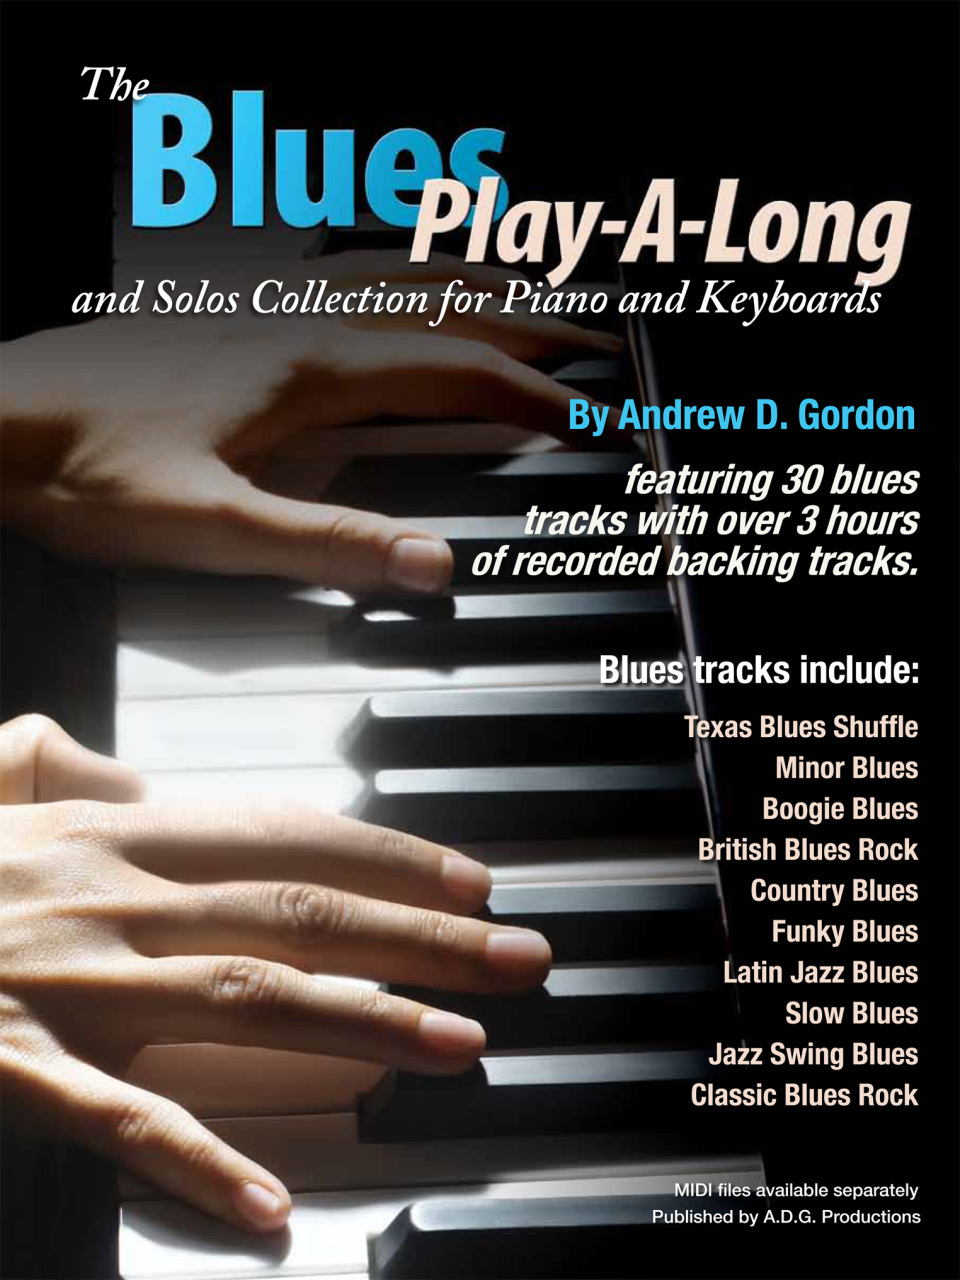 The Blues Play-A-Long and Solos Collection for Piano and Keyboards